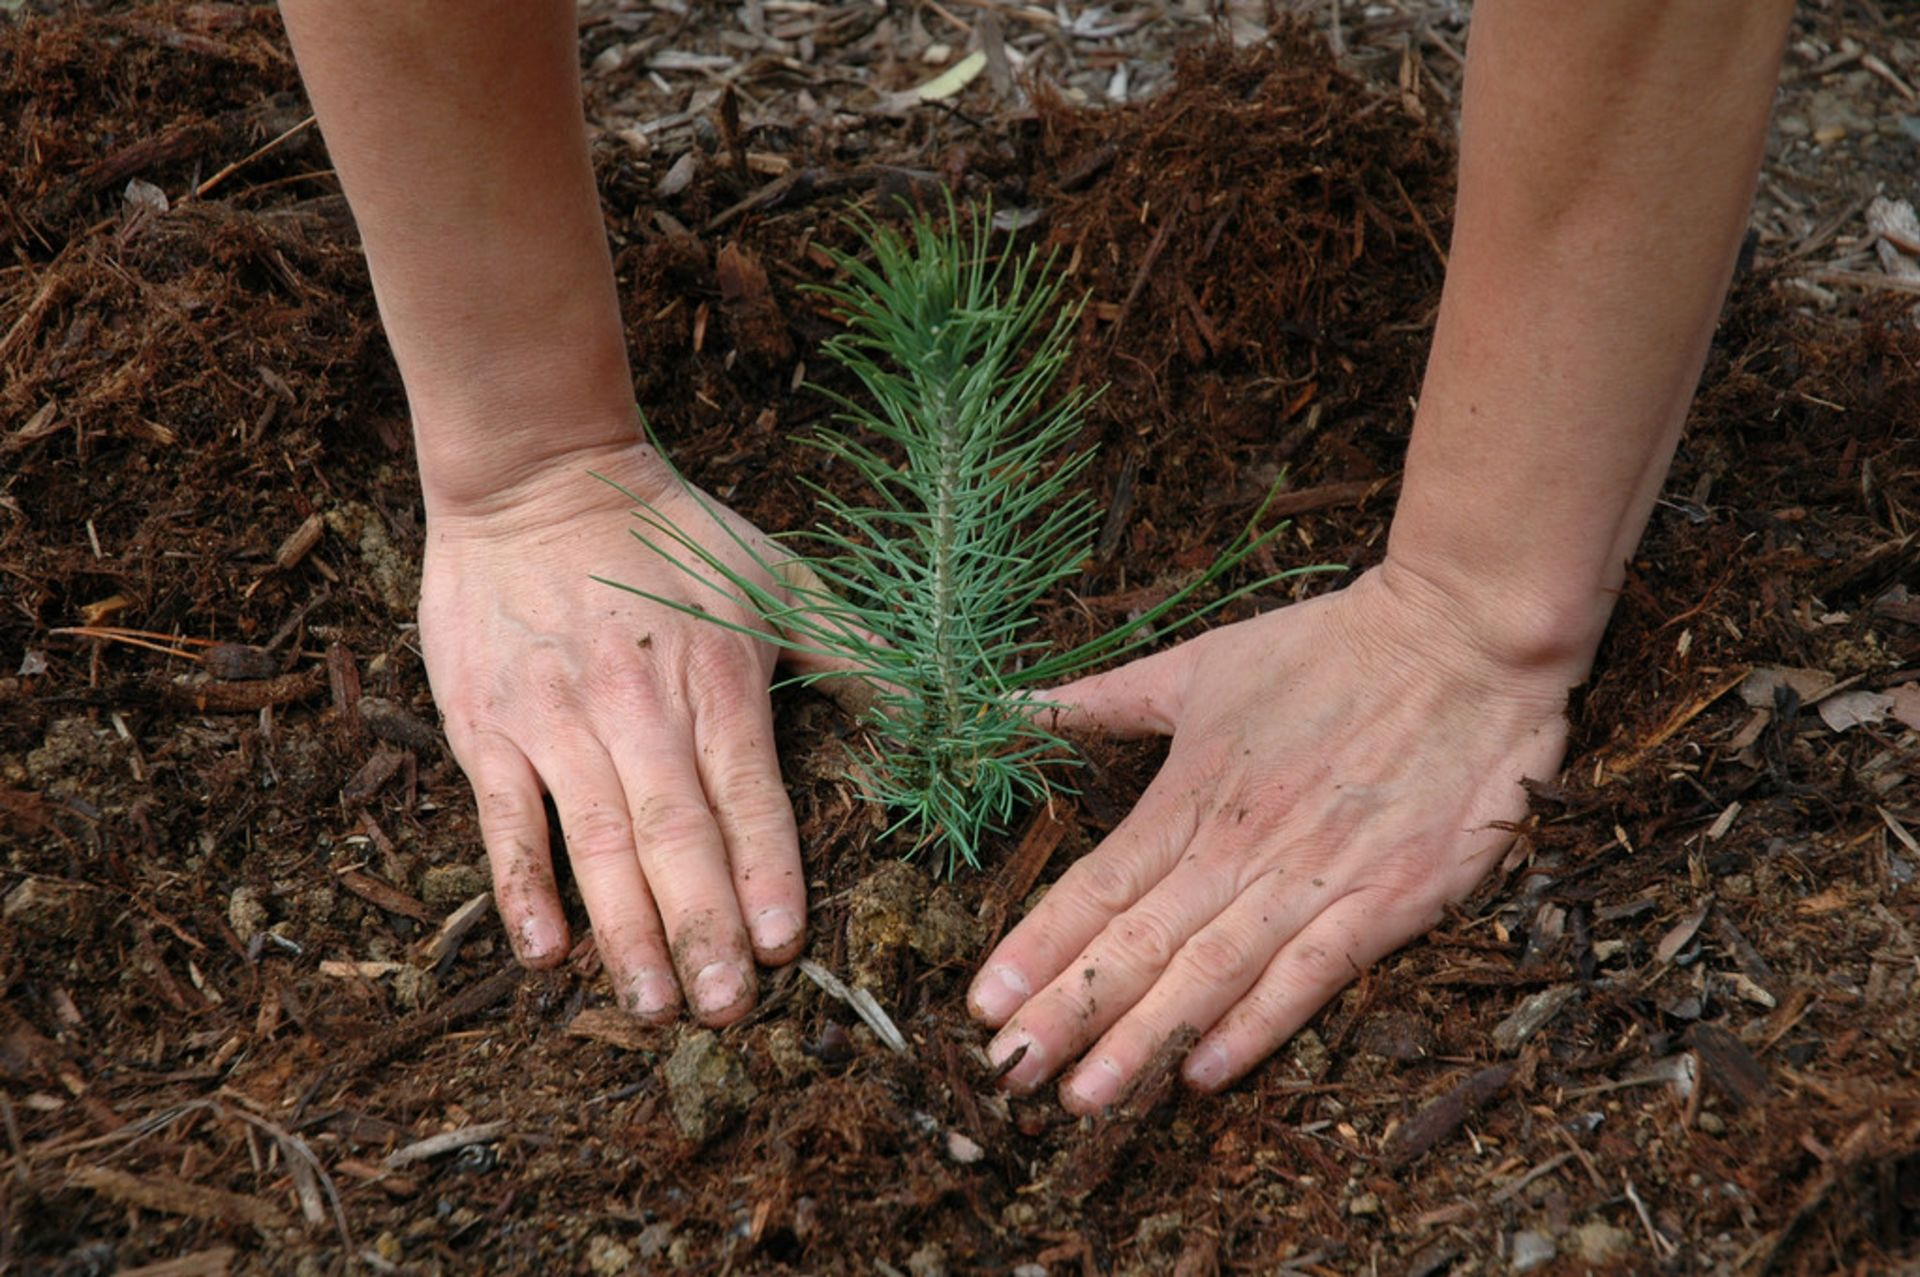 Planting Pro: Tips for a Healthy, Happy Tree